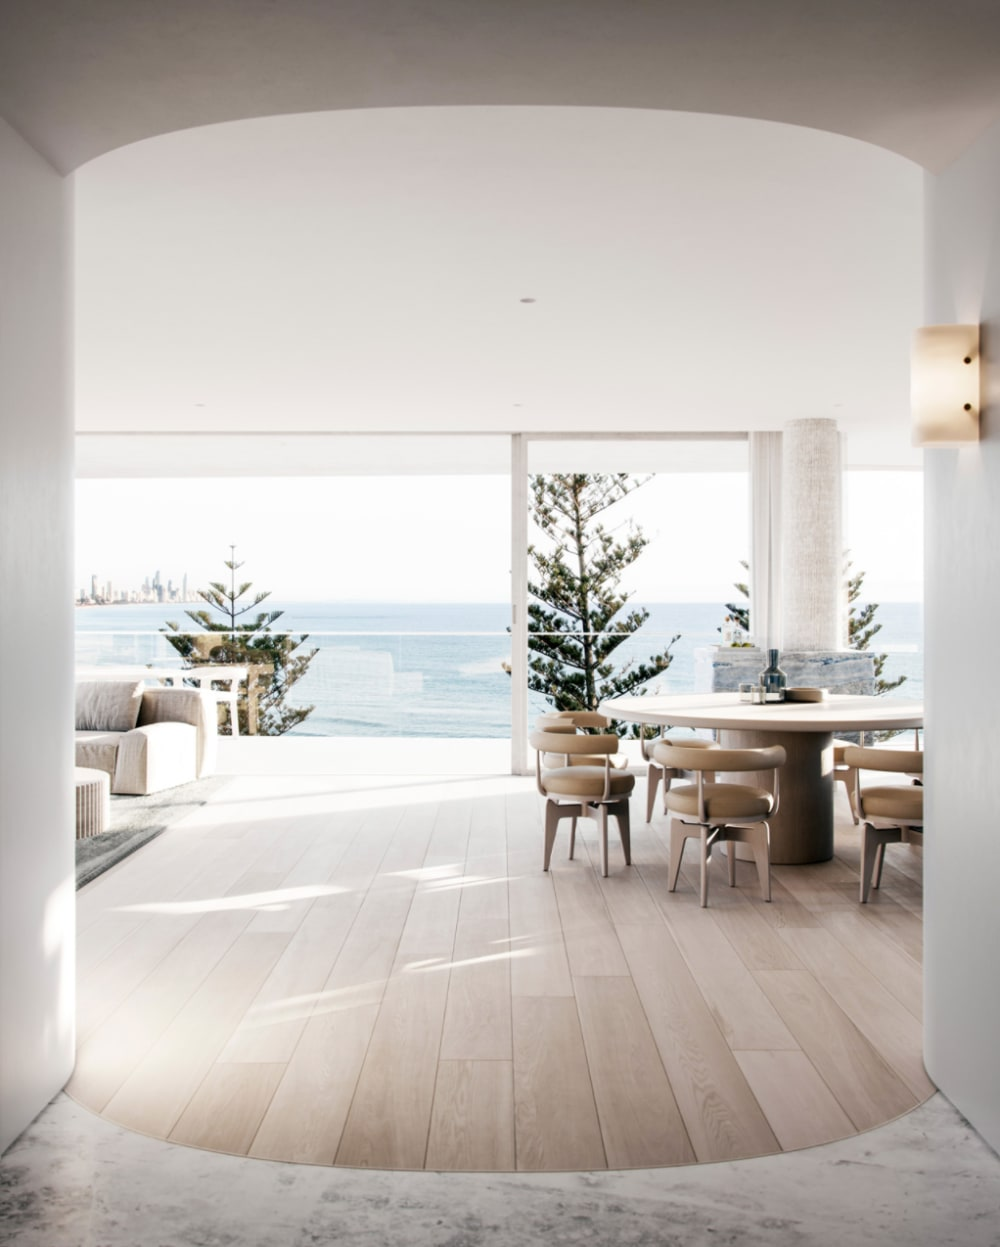 """Contemporary living room with full-height windows looking into the ocean.<span class=""""sr-only""""> (opened in a new window/tab)</span>"""